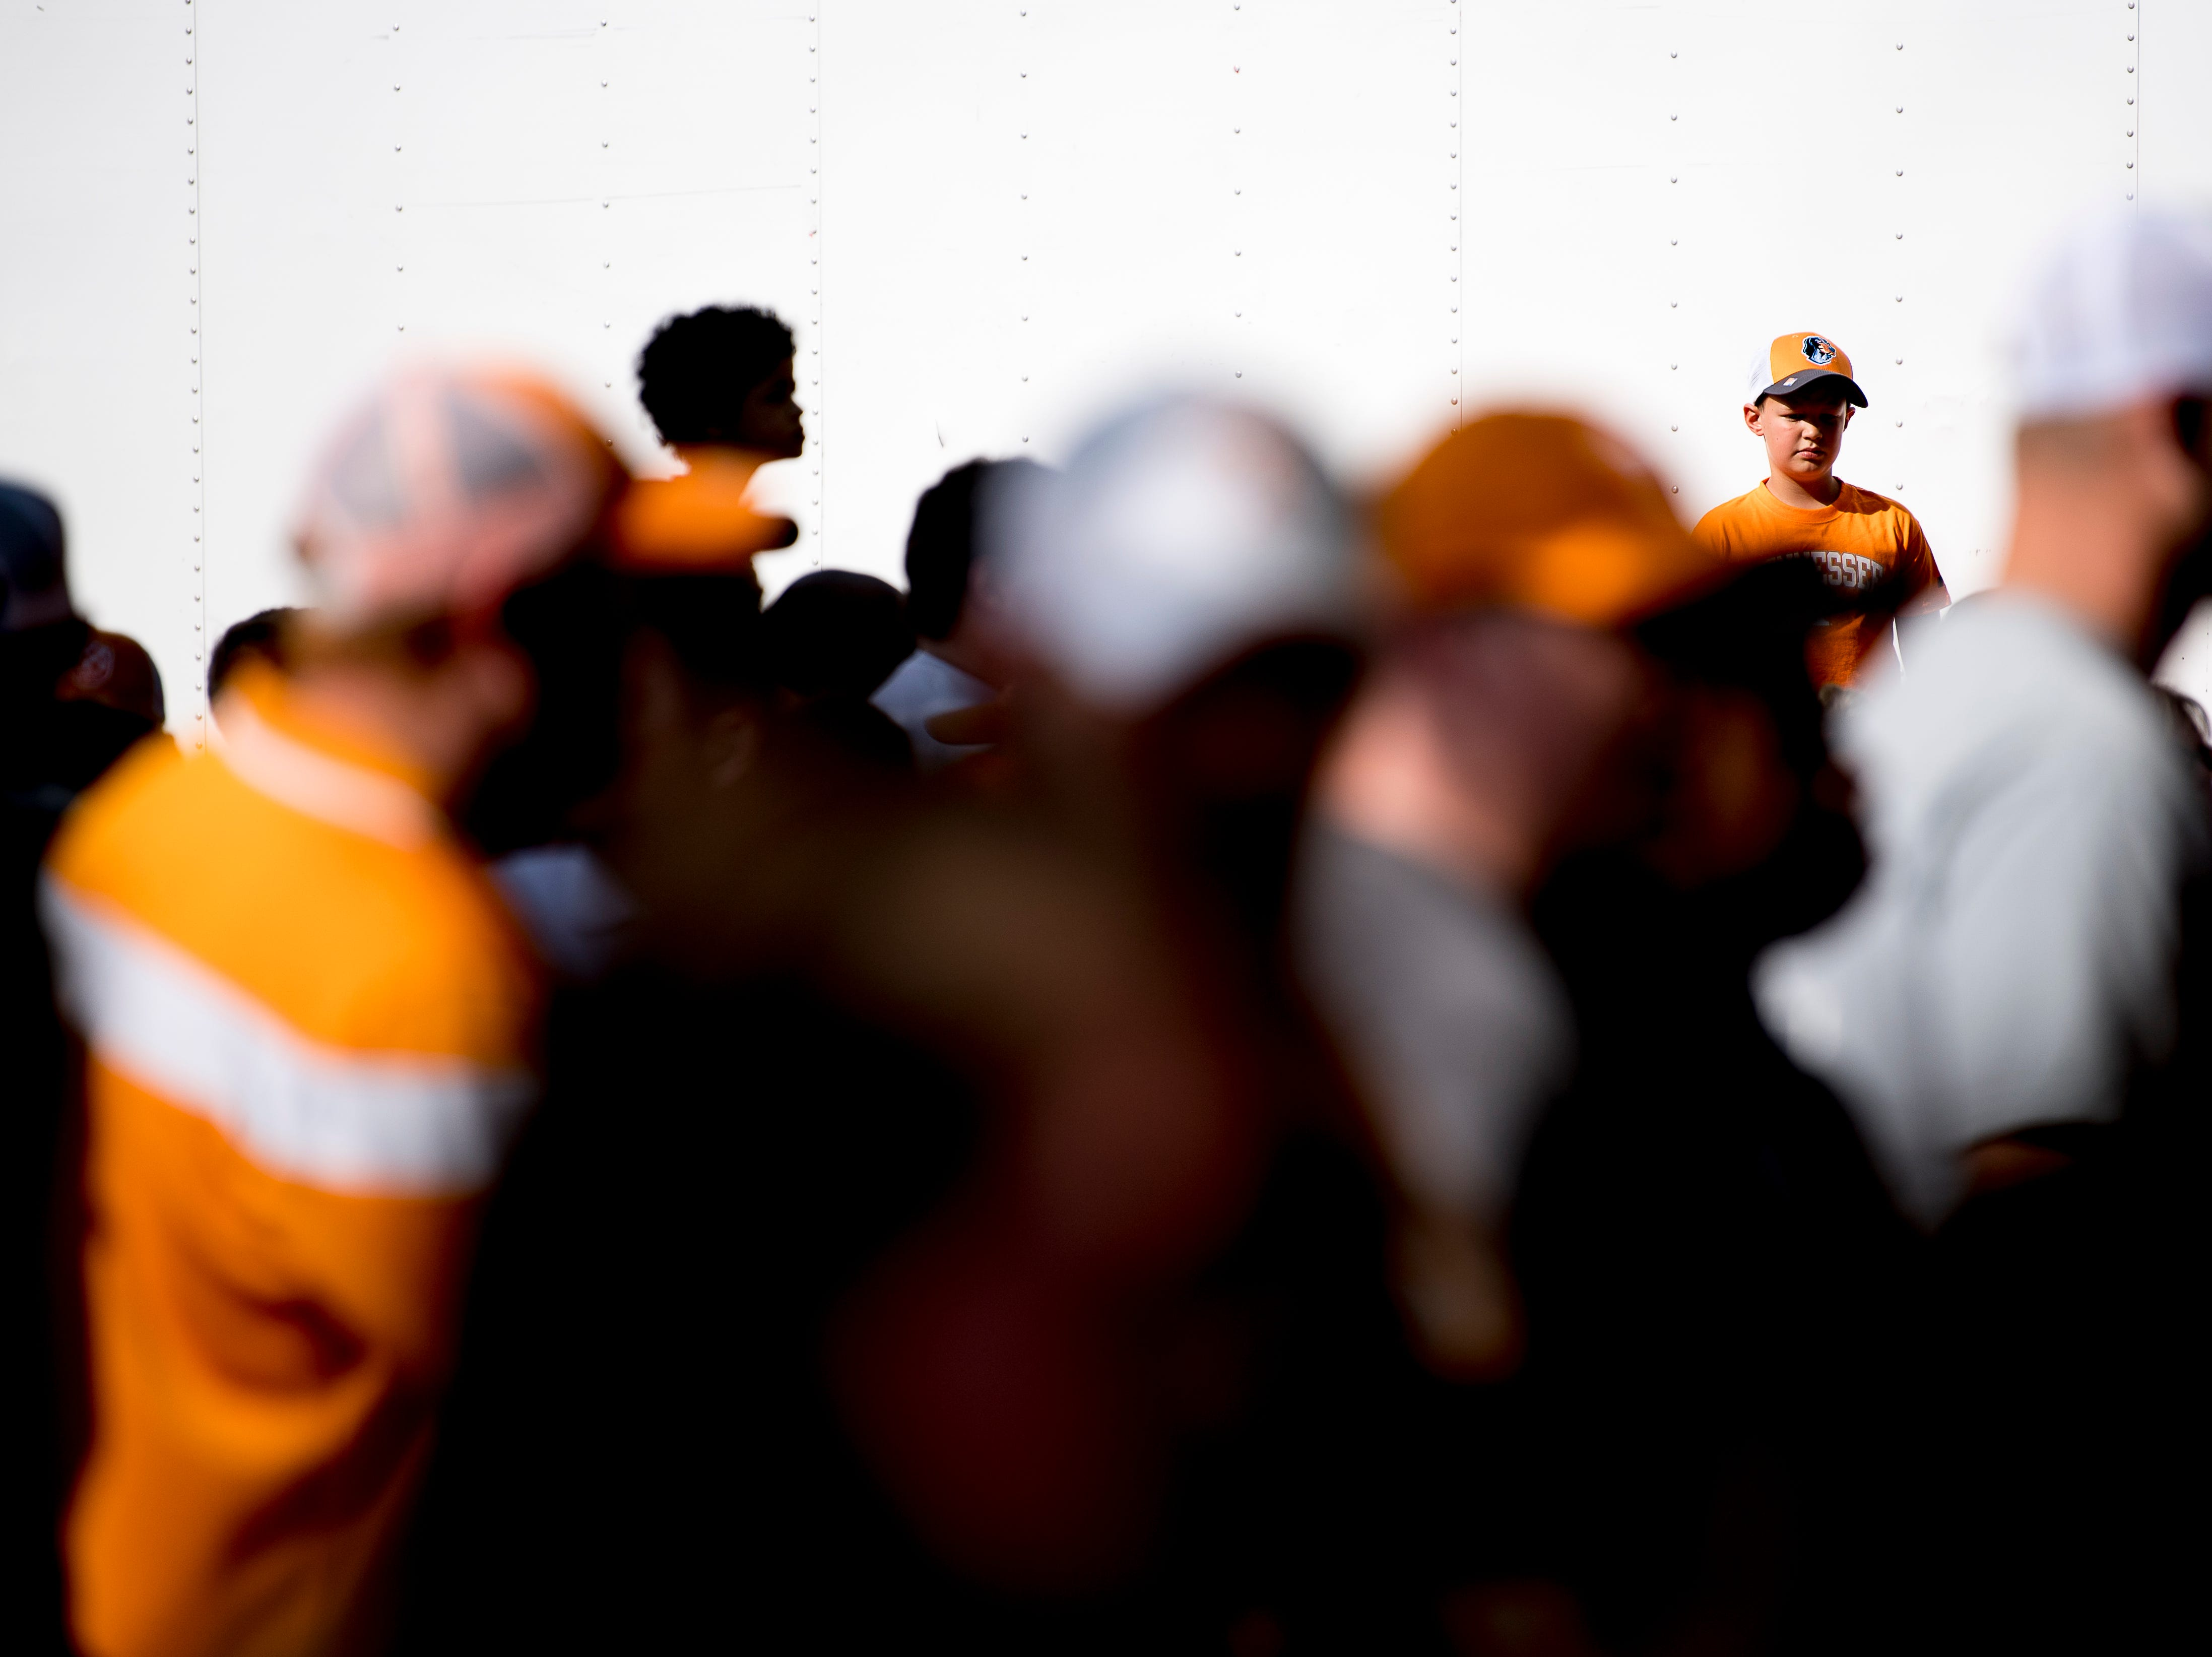 Tennessee fans flood to the gates during the Vol Walk at the Tennessee Spring Game at Neyland Stadium in Knoxville, Tennessee on Saturday, April 13, 2019.